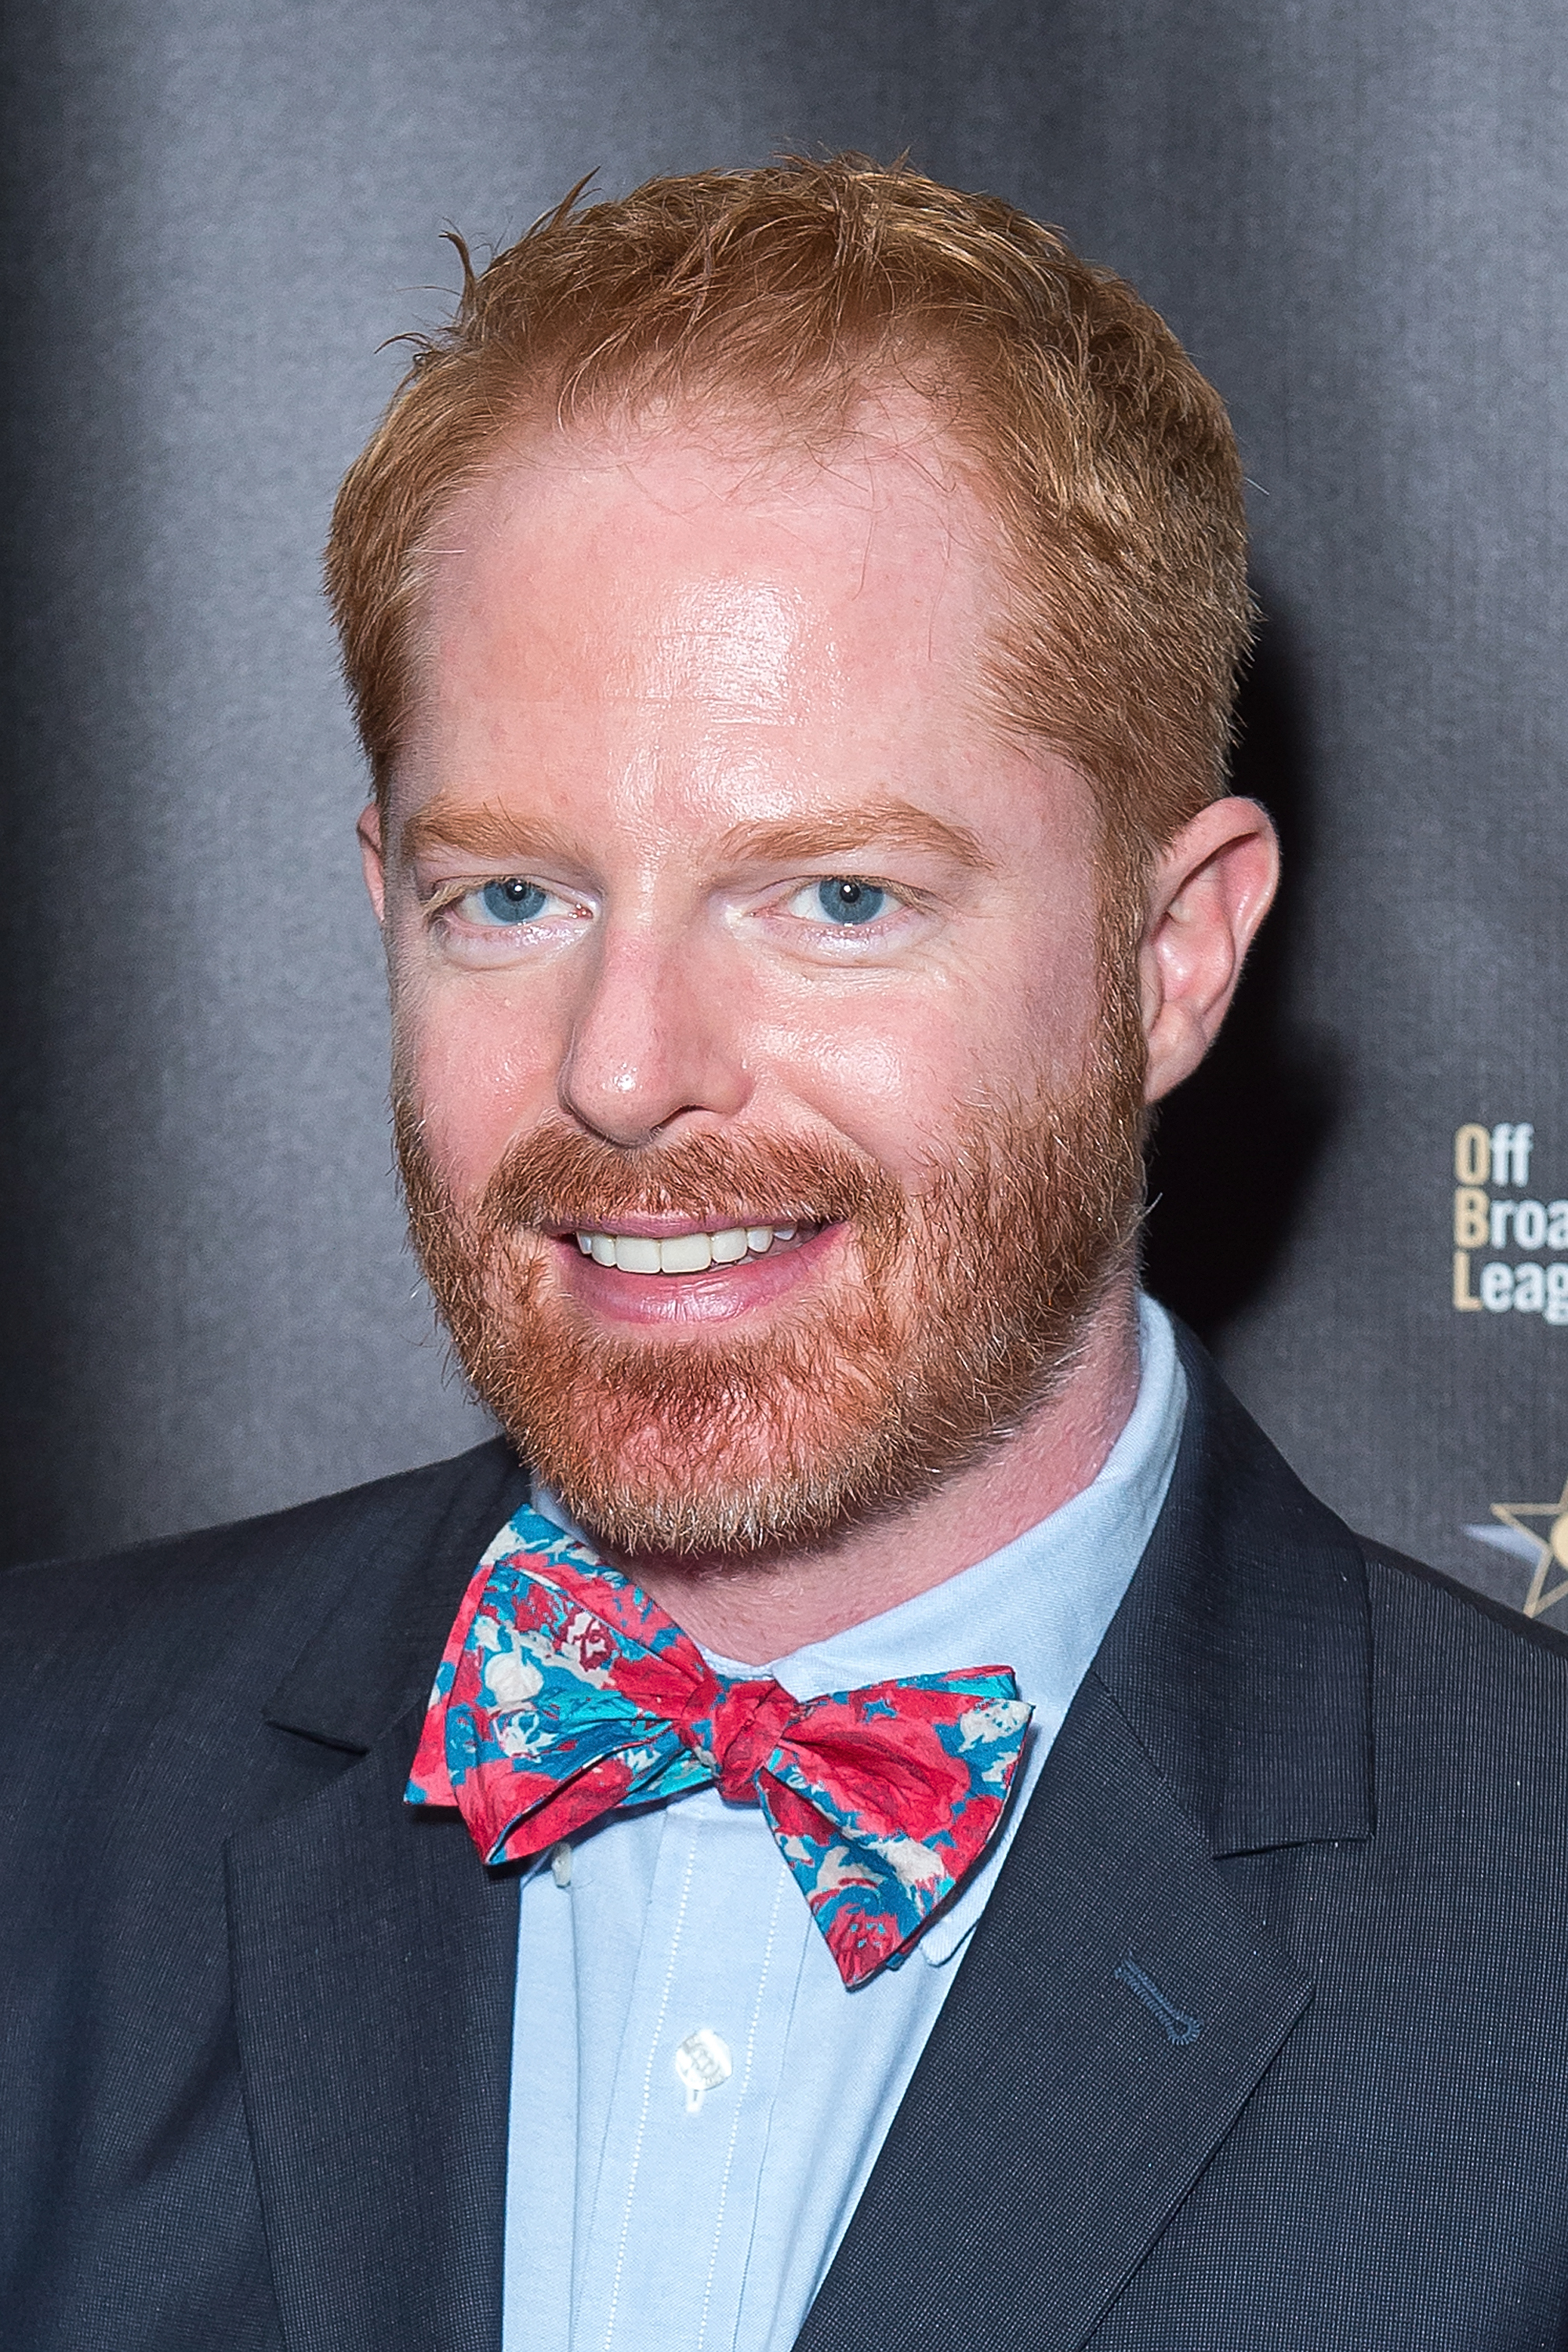 Actor Jesse Tyler Ferguson attends the 30th Annual Lucille Lortel Awards at NYU Skirball Center on May 10, 2015 in New York City.